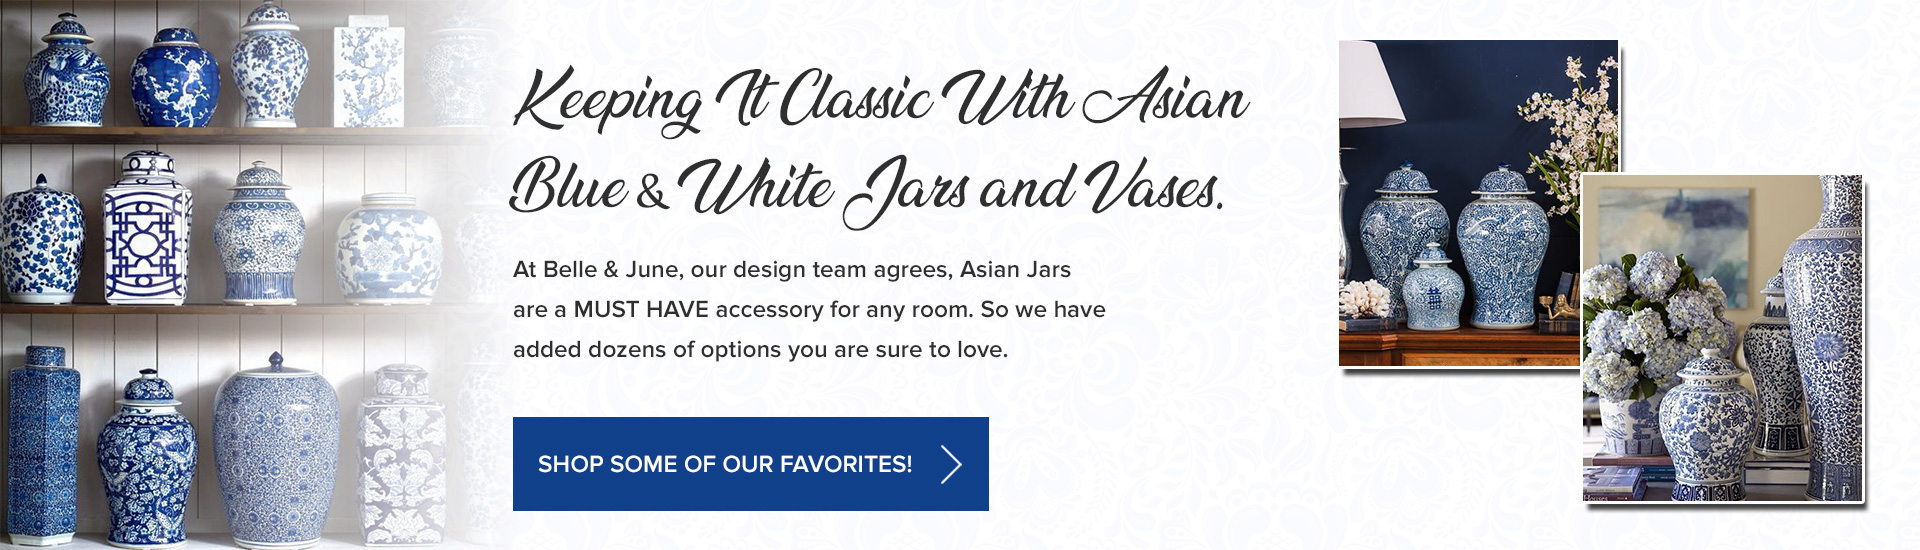 Shop Asian Jars and vases